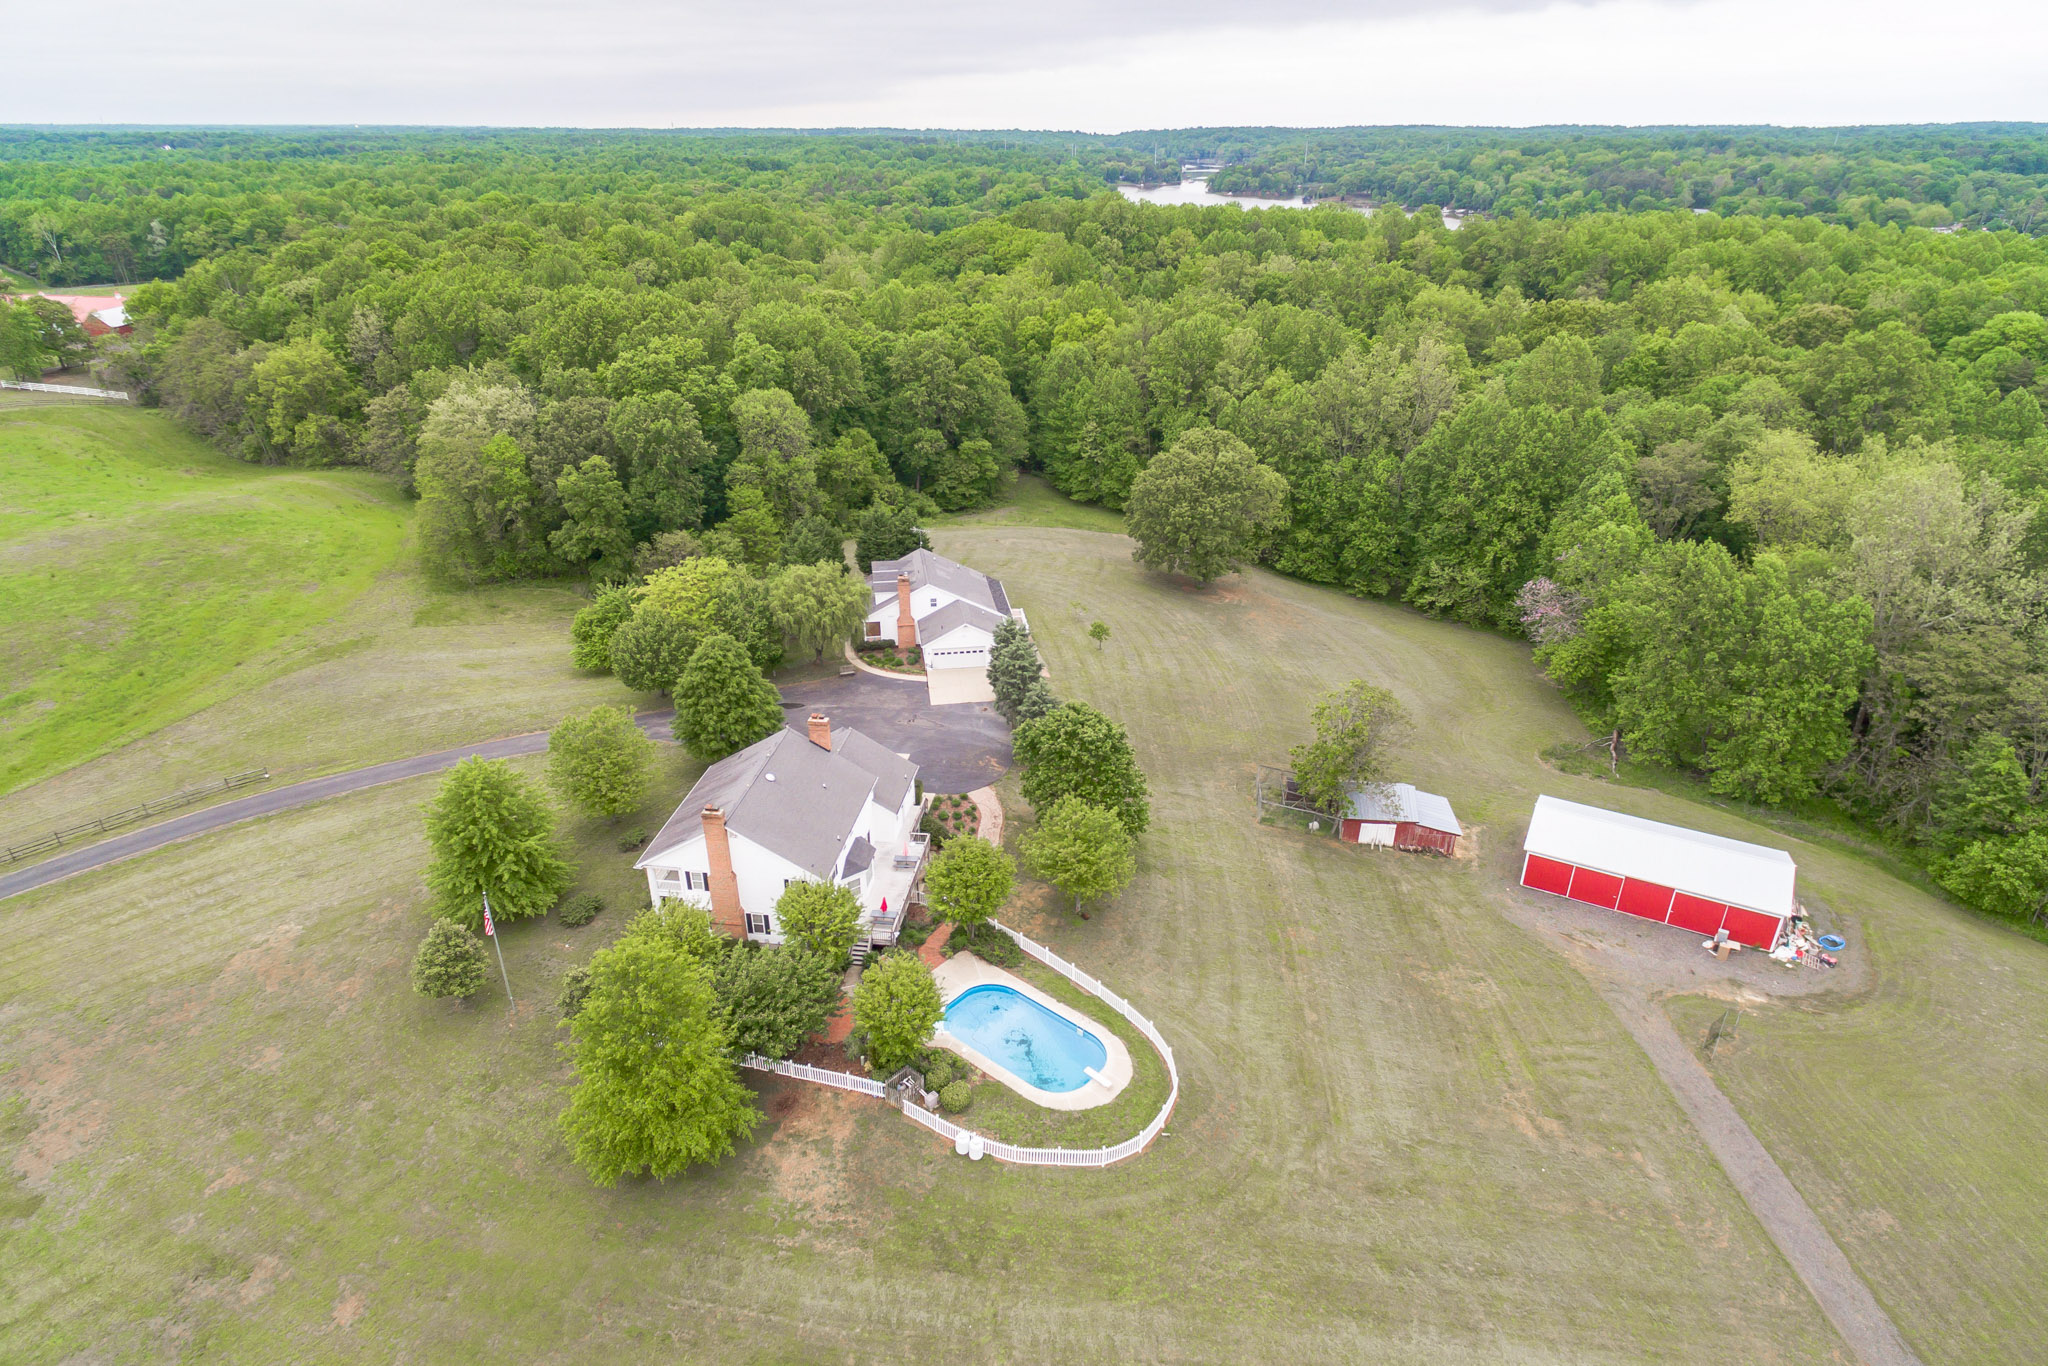 2425 Garrity Road, St. Leonard, Beautiful Multi-Family Estate & Farm on 21 acres